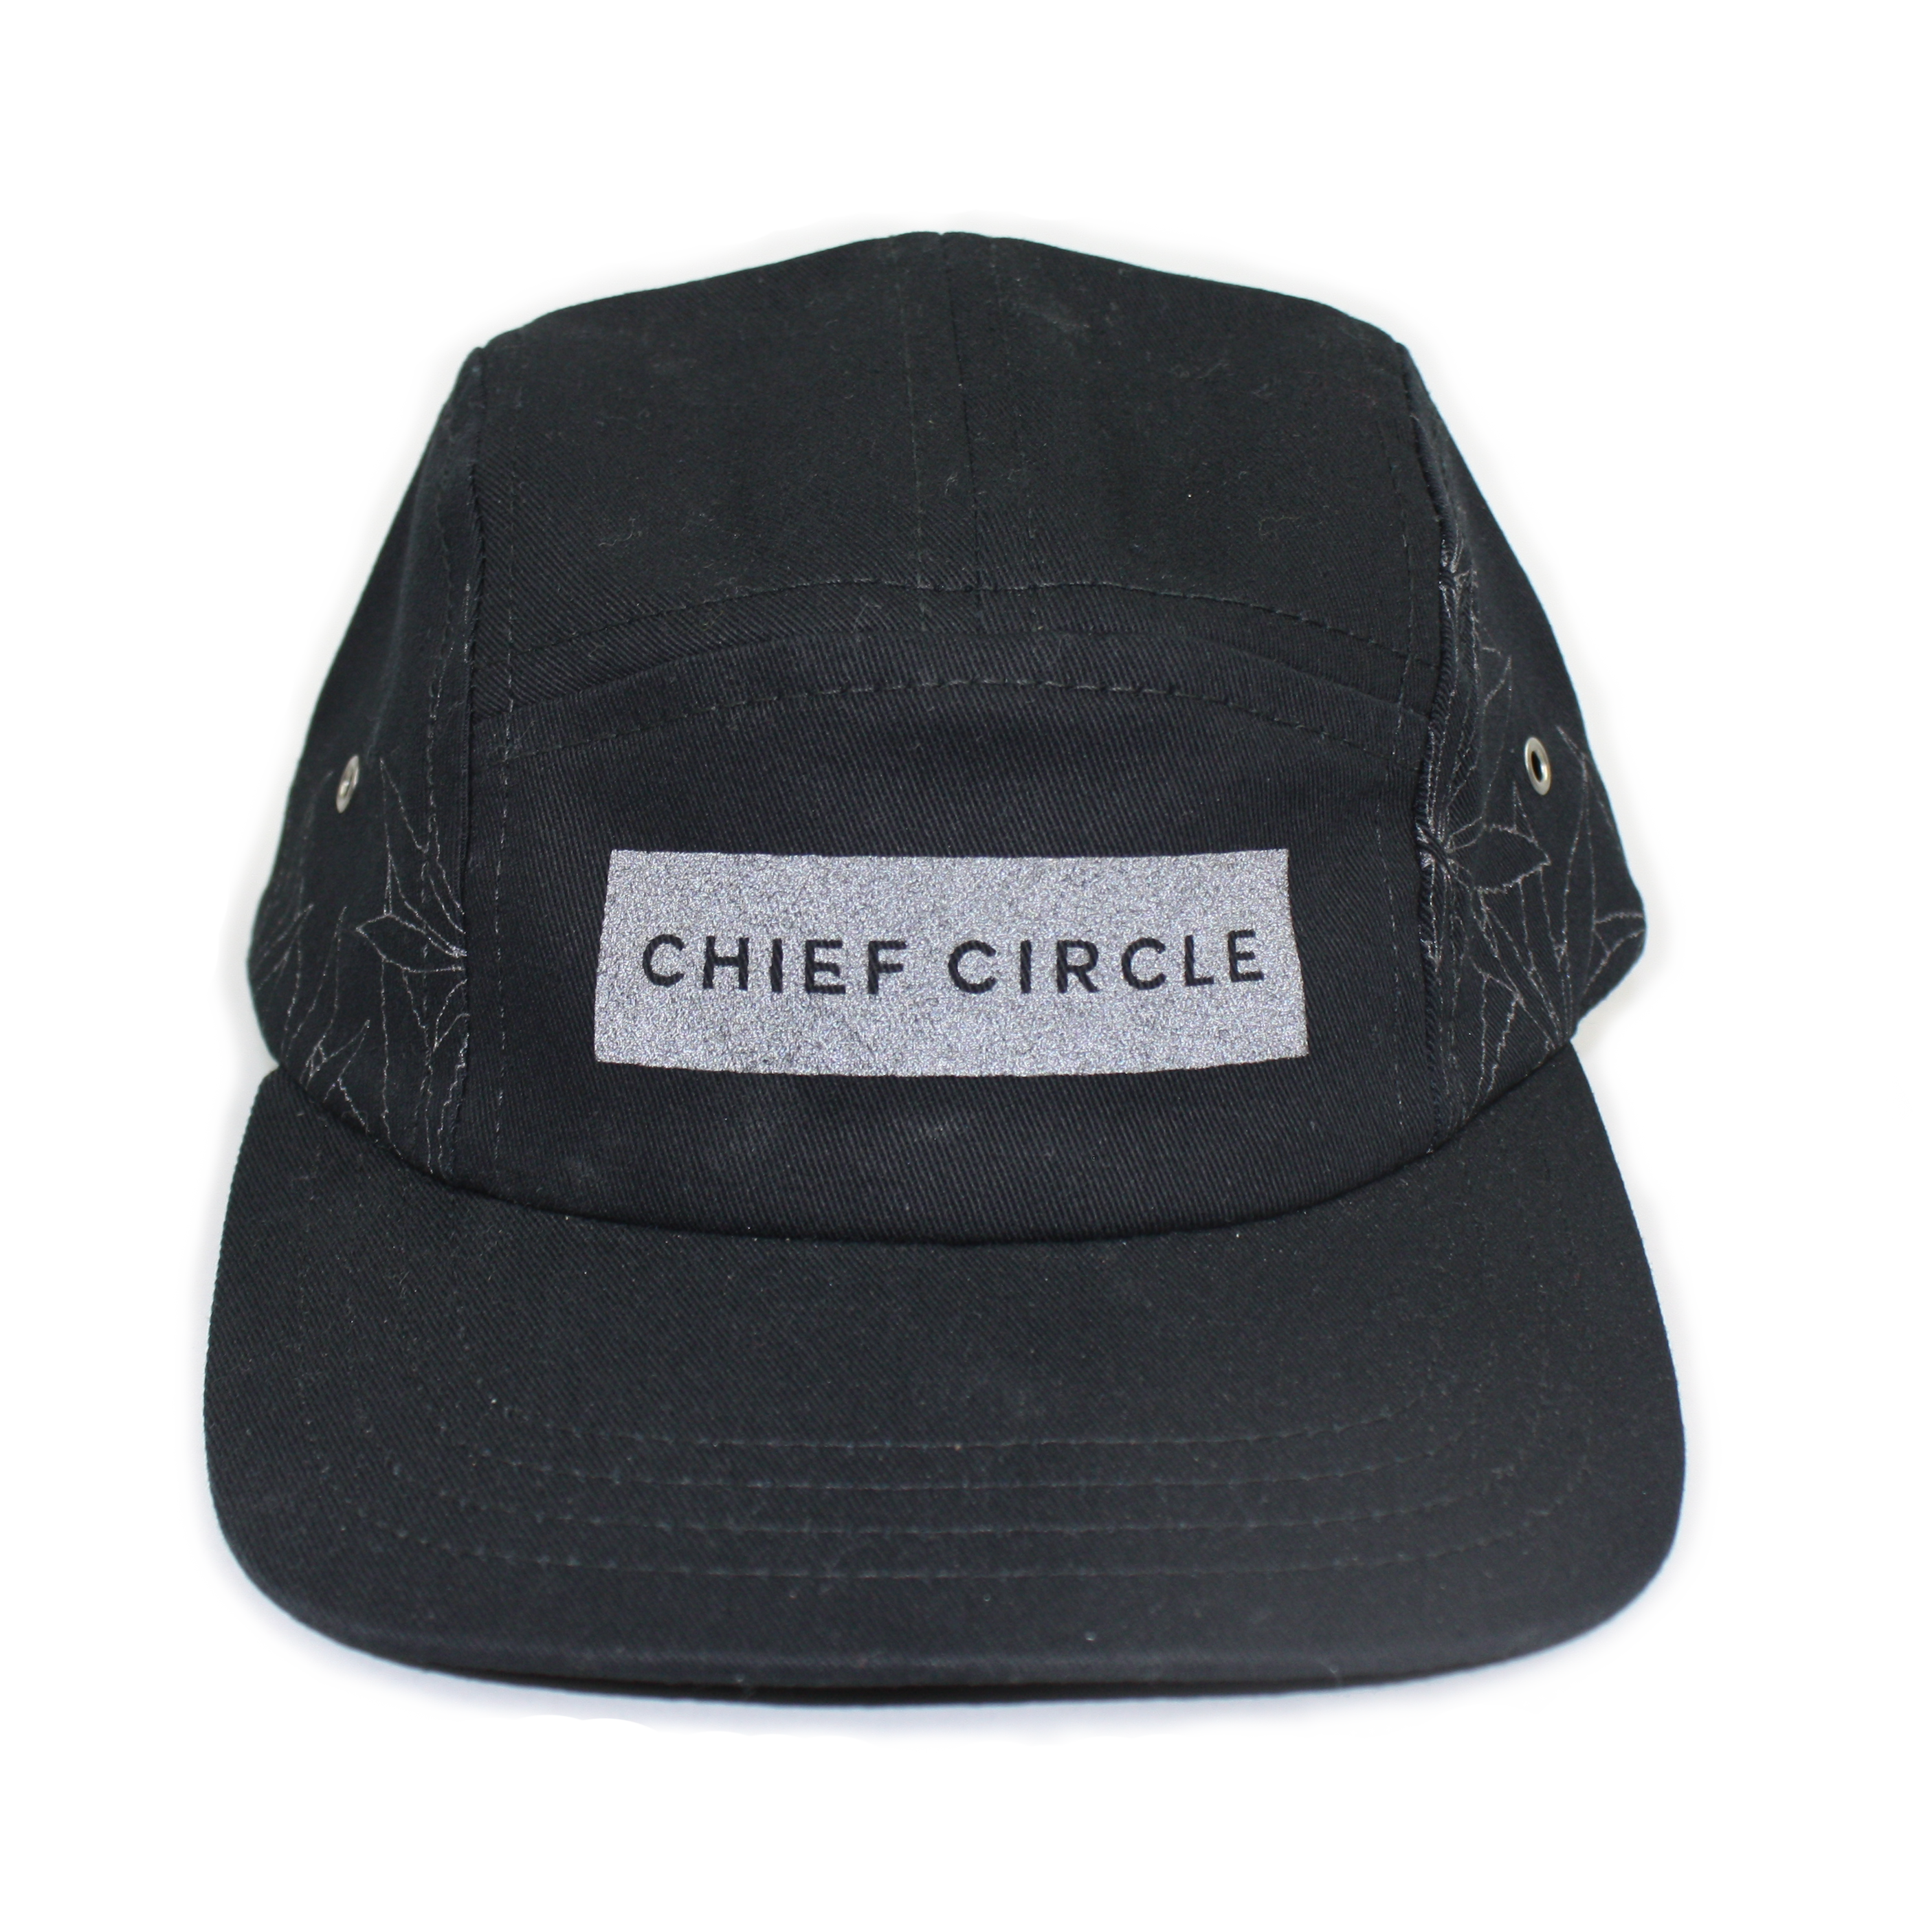 Chief Circle Camper